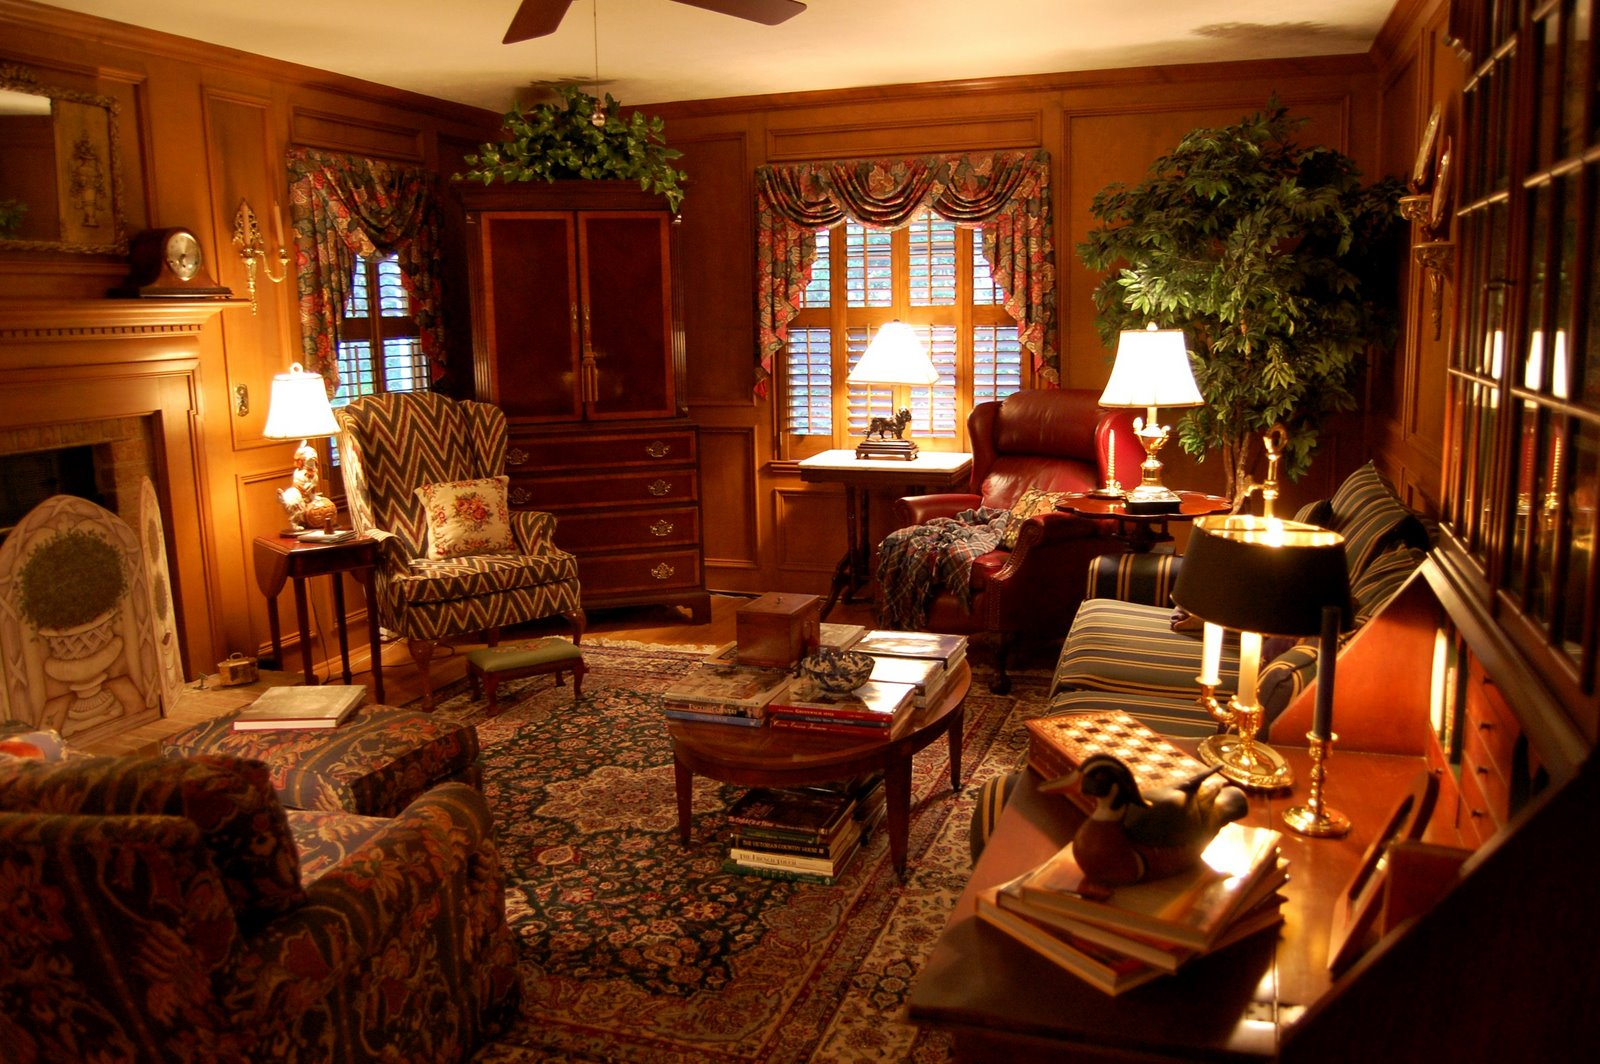 Decoration Country Style Living Room Living Room Curtains Design with 13 Smart Ideas How to Make Country Style Living Room Sets